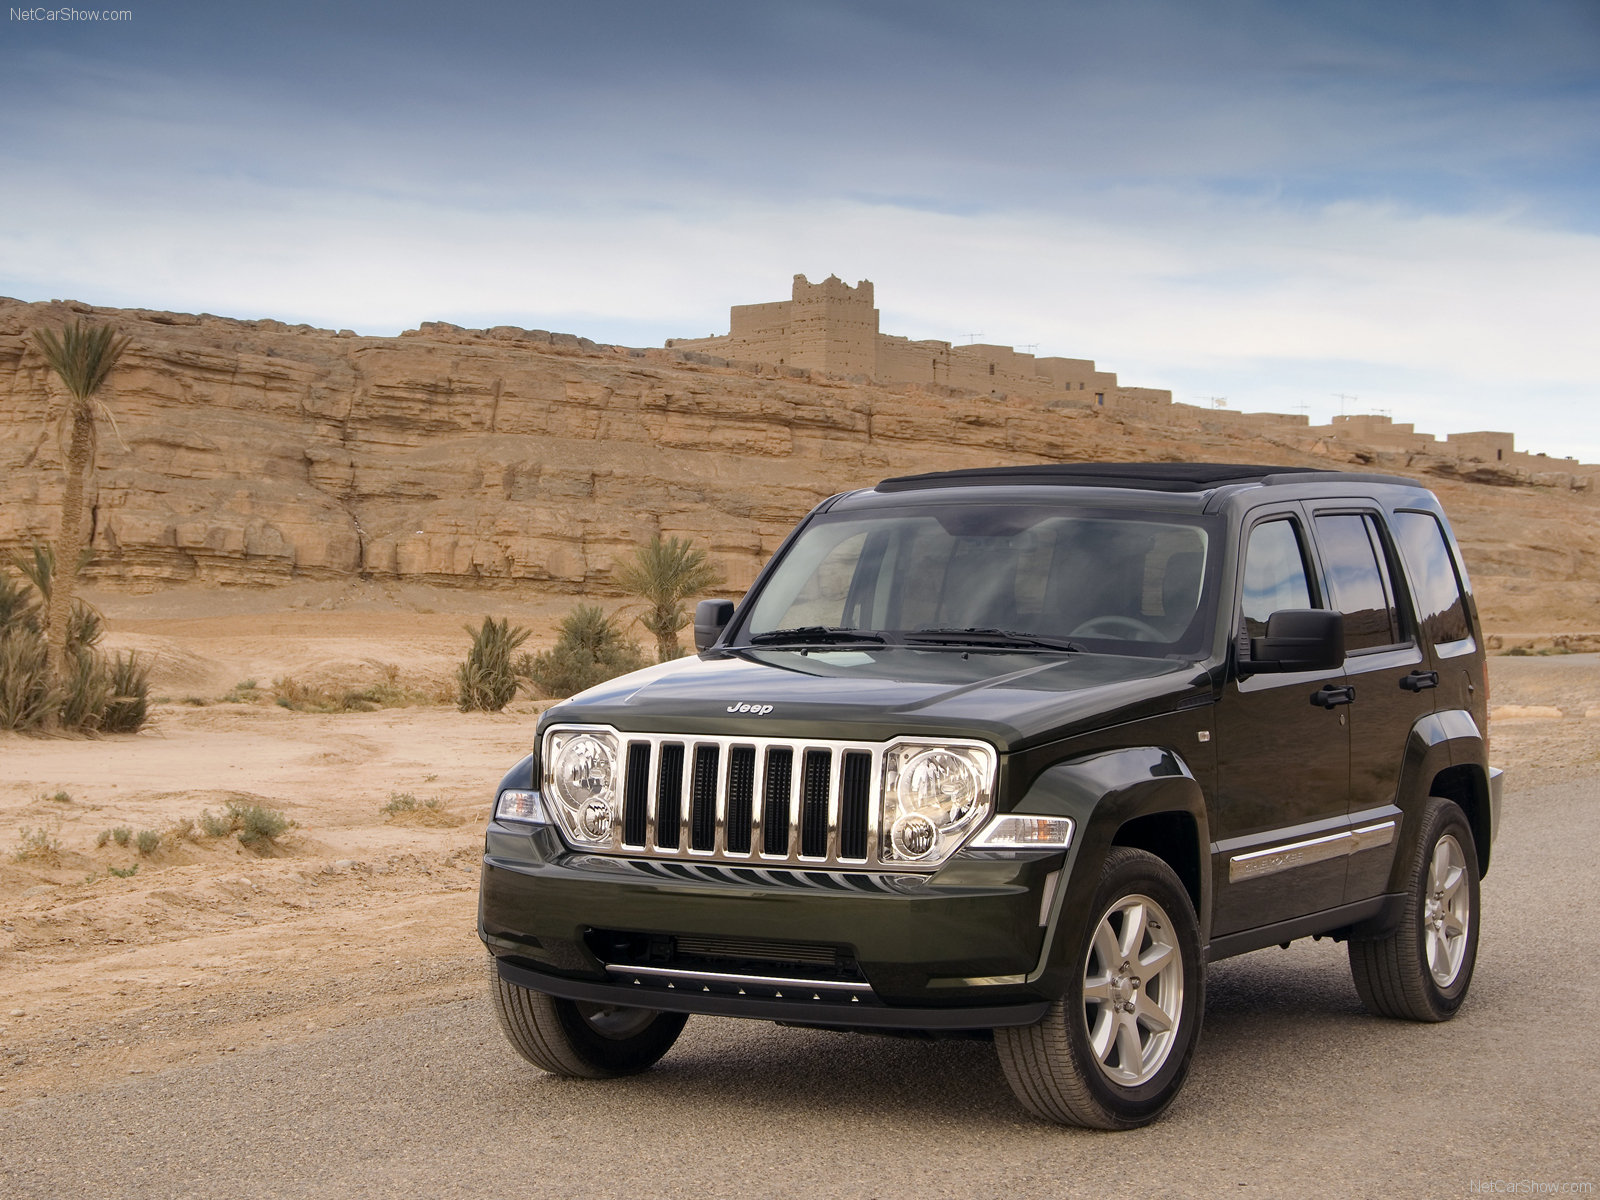 model cars latest models car prices reviews and pictures jeep cherokee. Black Bedroom Furniture Sets. Home Design Ideas